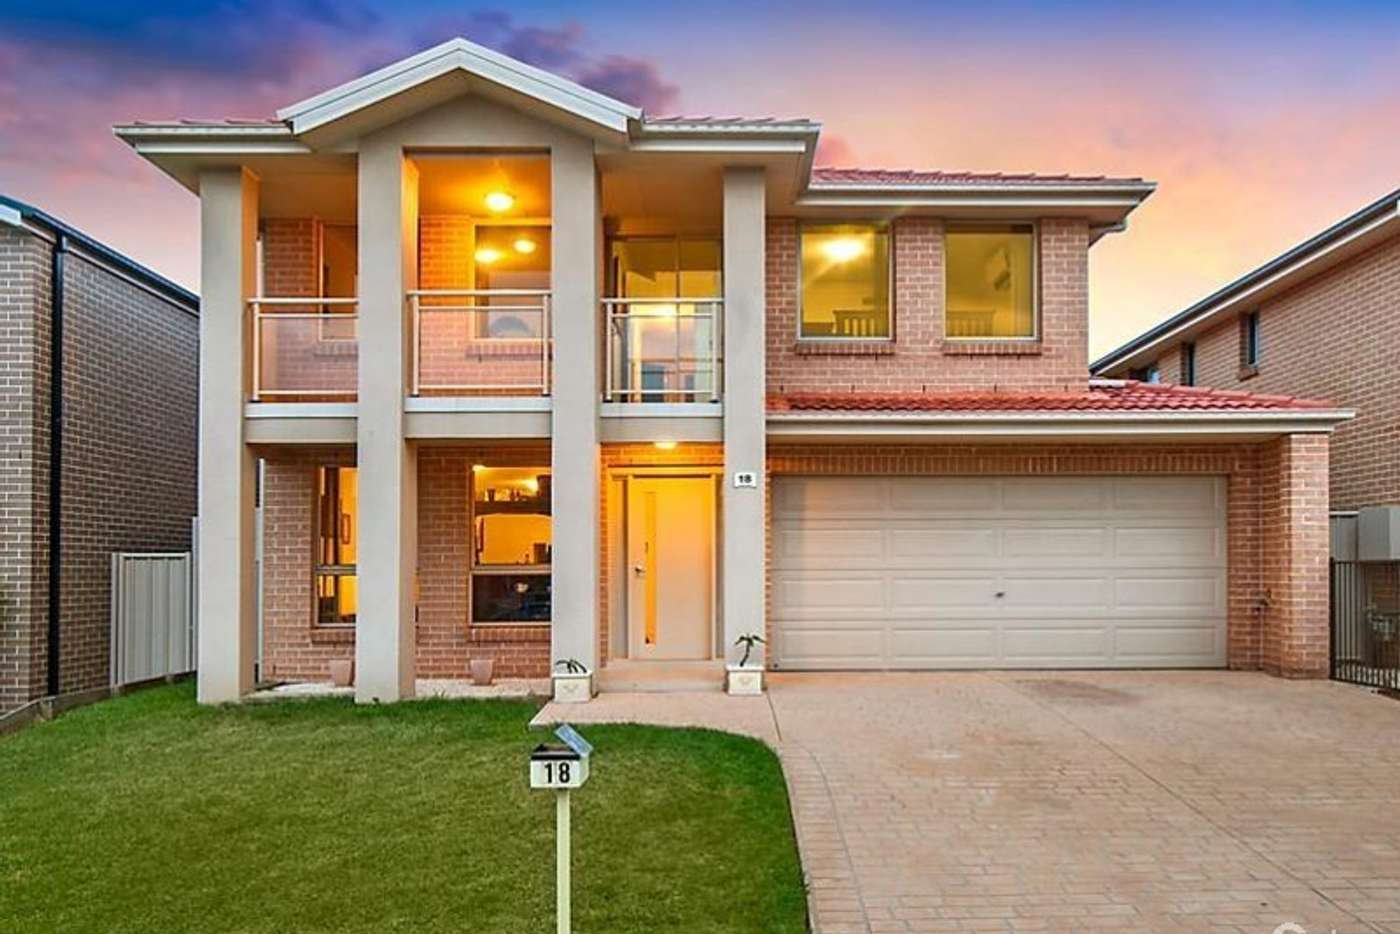 Main view of Homely house listing, 18 Rosebrook Ave, Kellyville Ridge NSW 2155